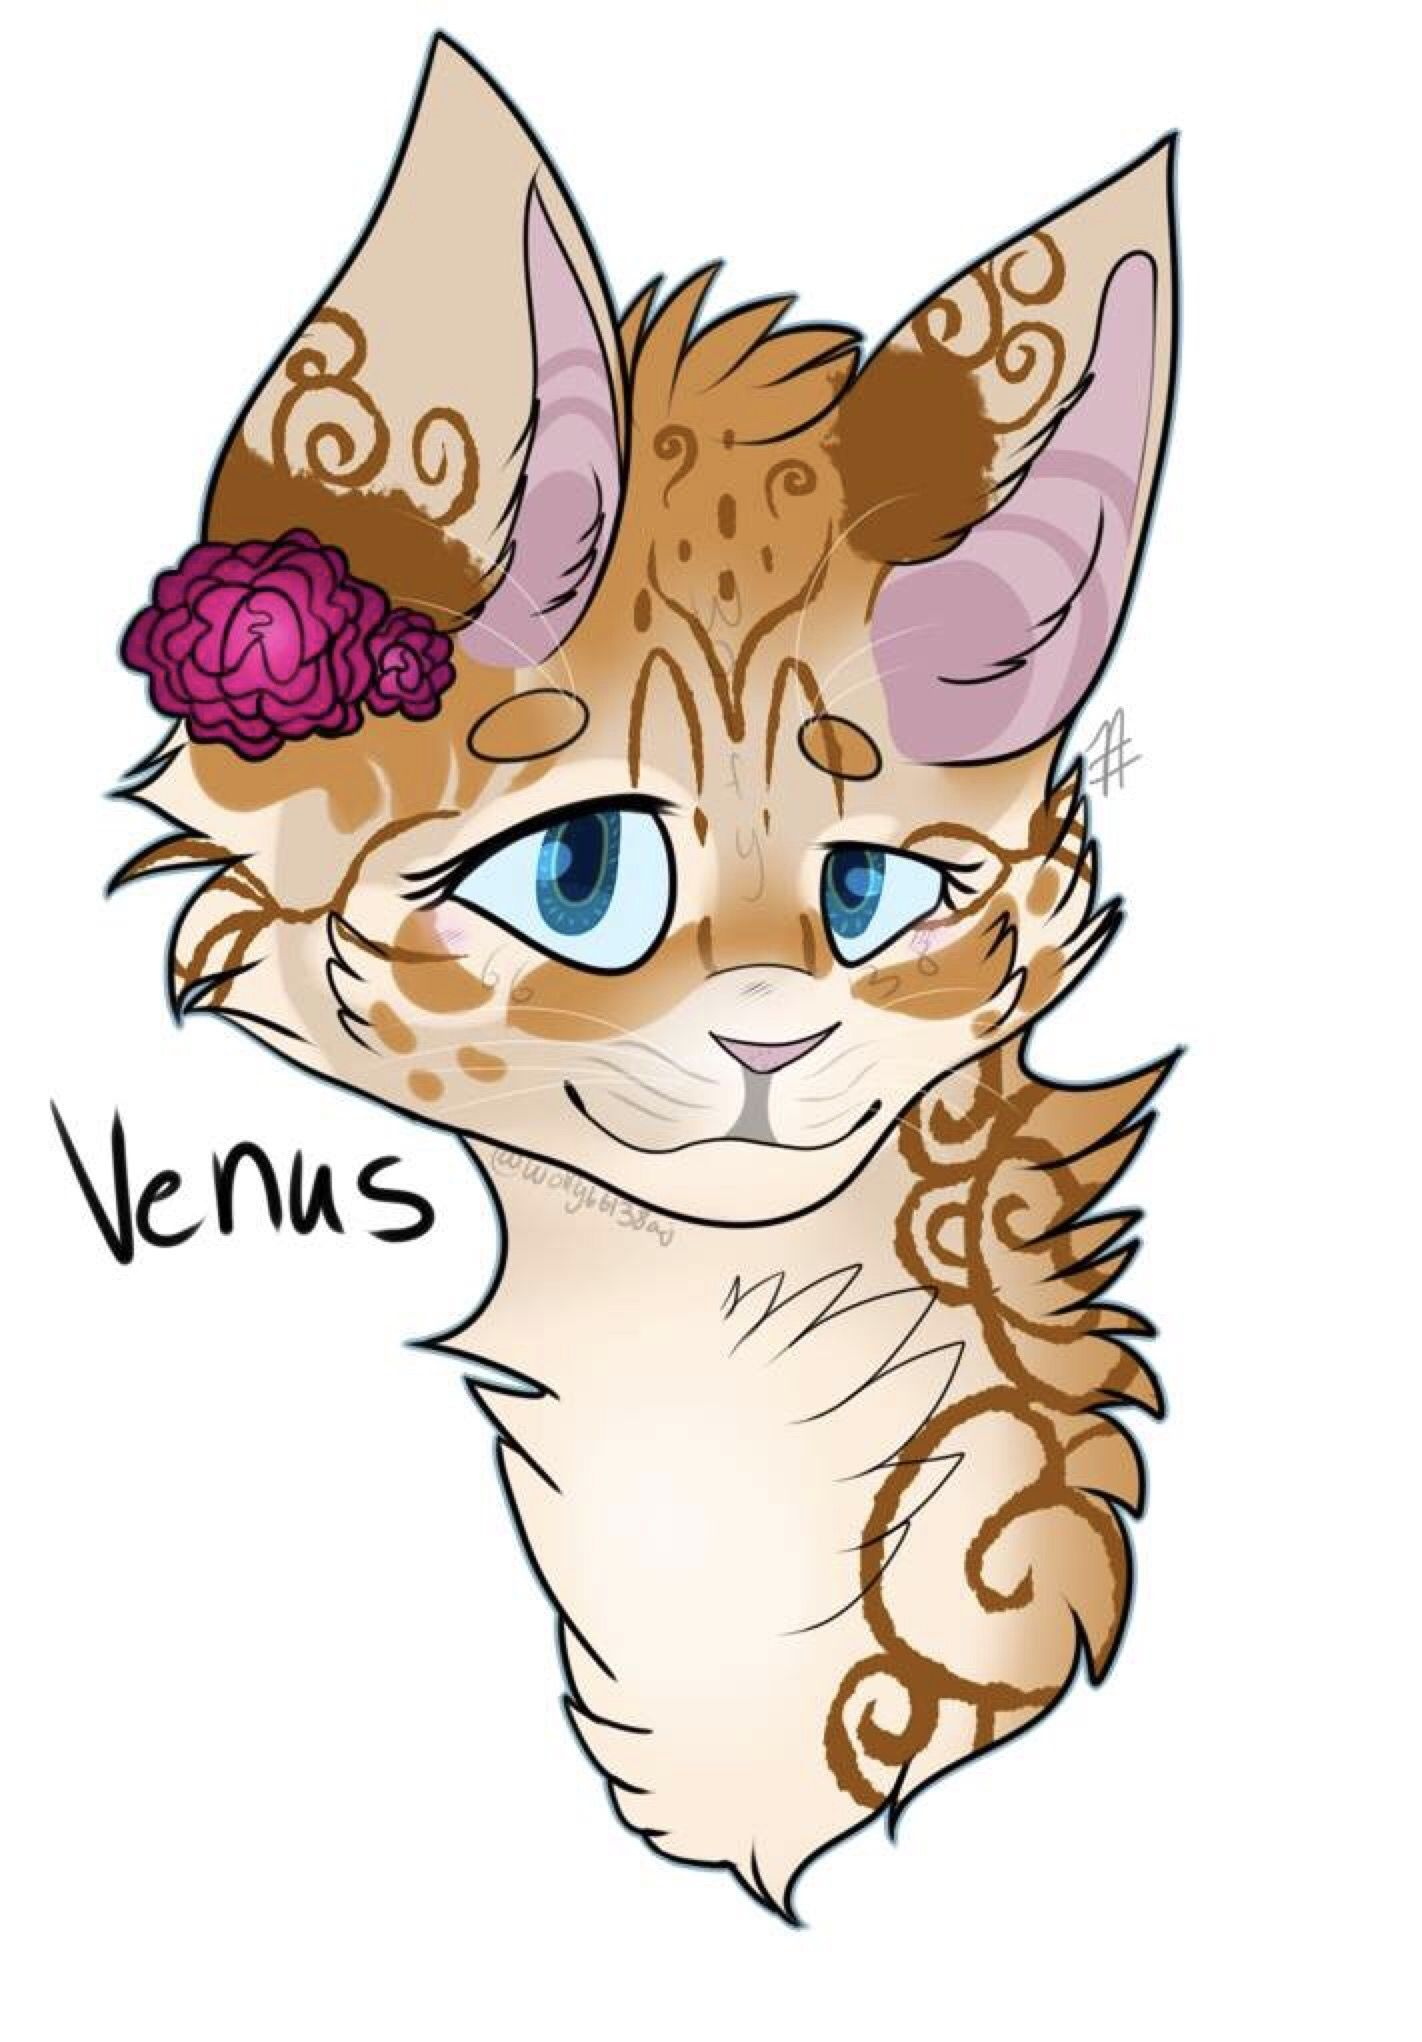 Venus10 moonsFemaleArt by ForestHeart on Warriors Amino